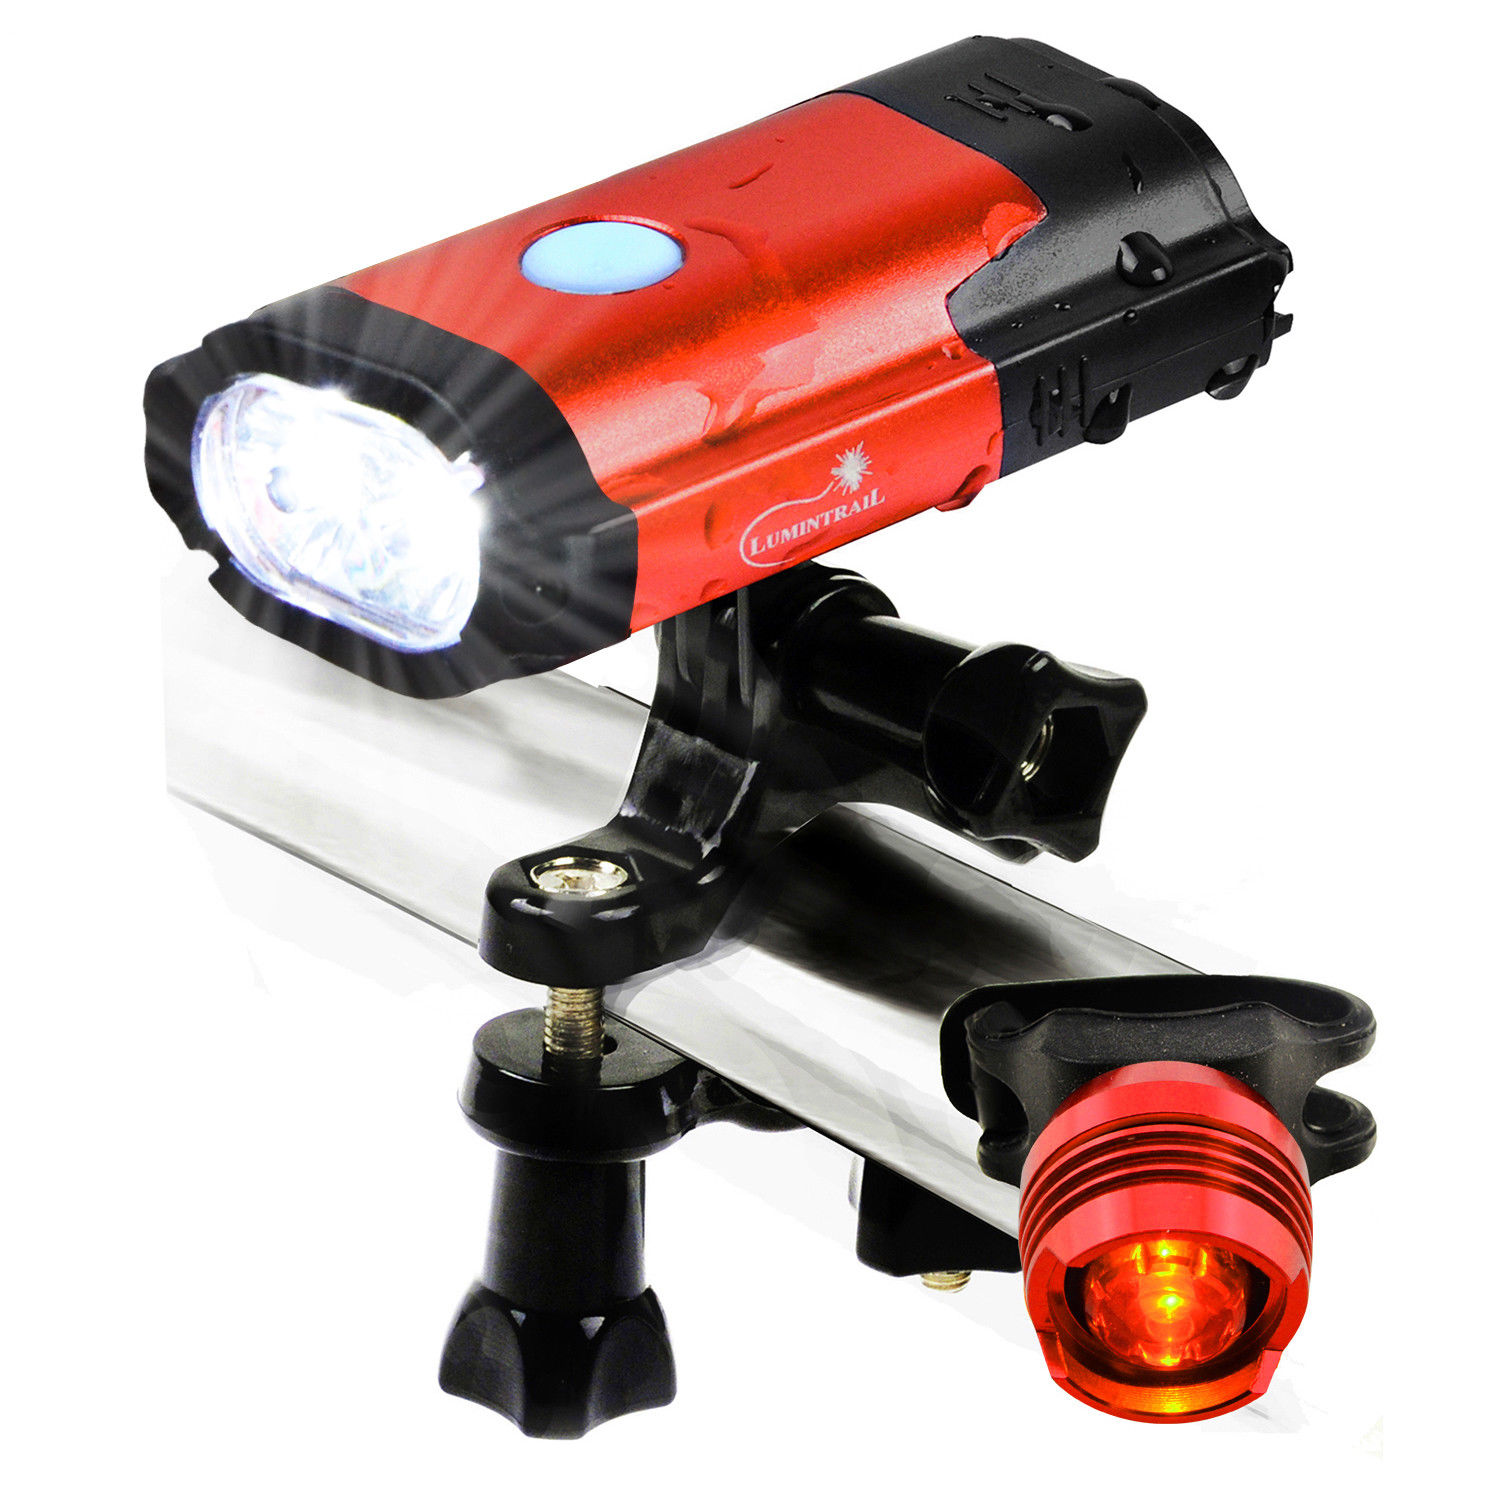 Lumintrail USB Rechargeable 800 Lumen LED Bike Light with Free Tail Light   Red